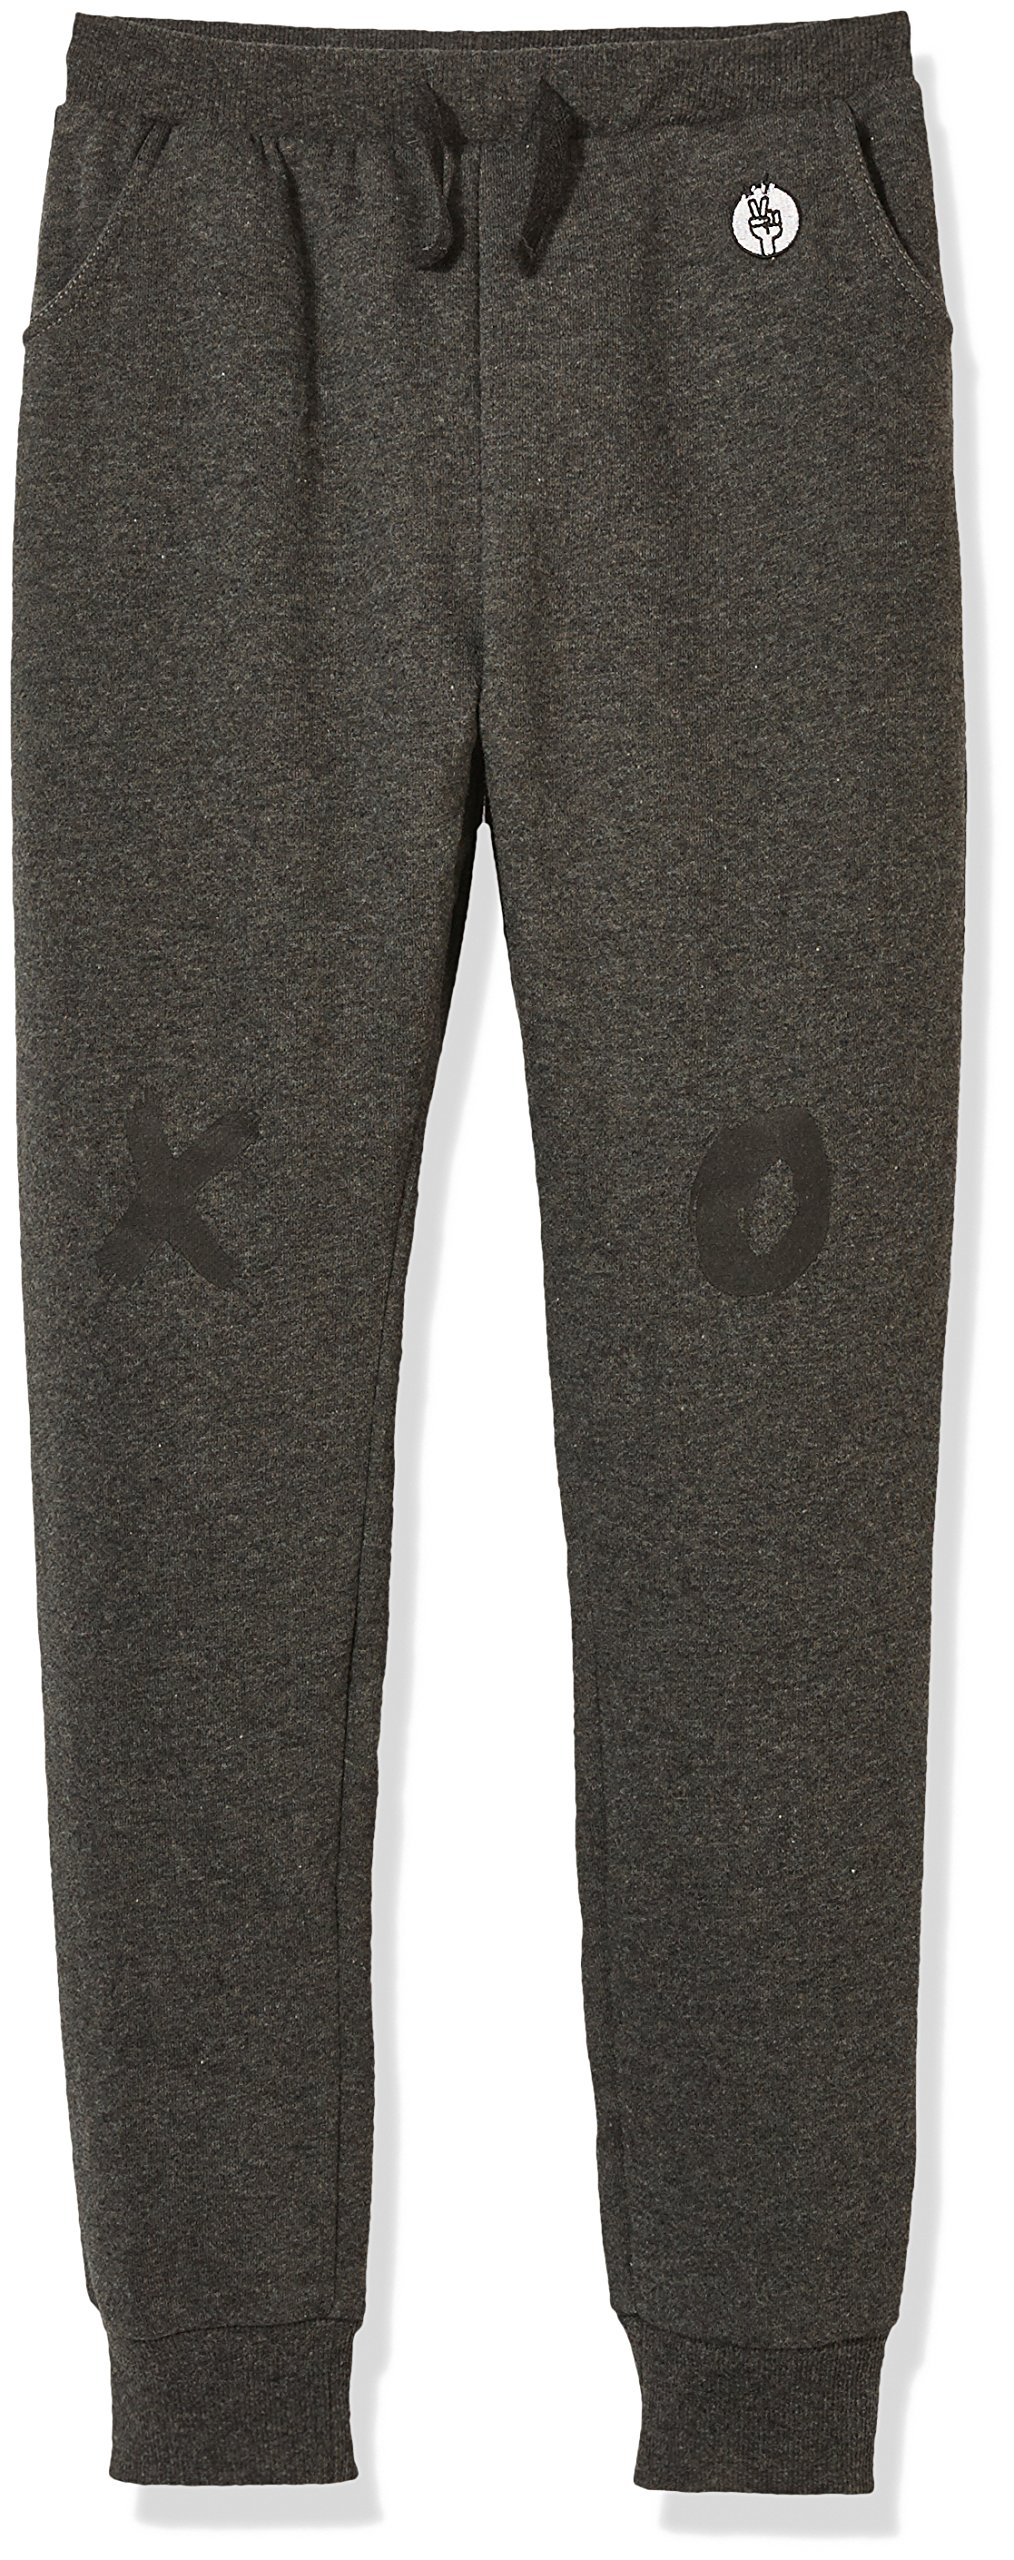 Kid Nation Kid's Fleece Jogger Pant for Boys Girls S Charcoal Gray Heather